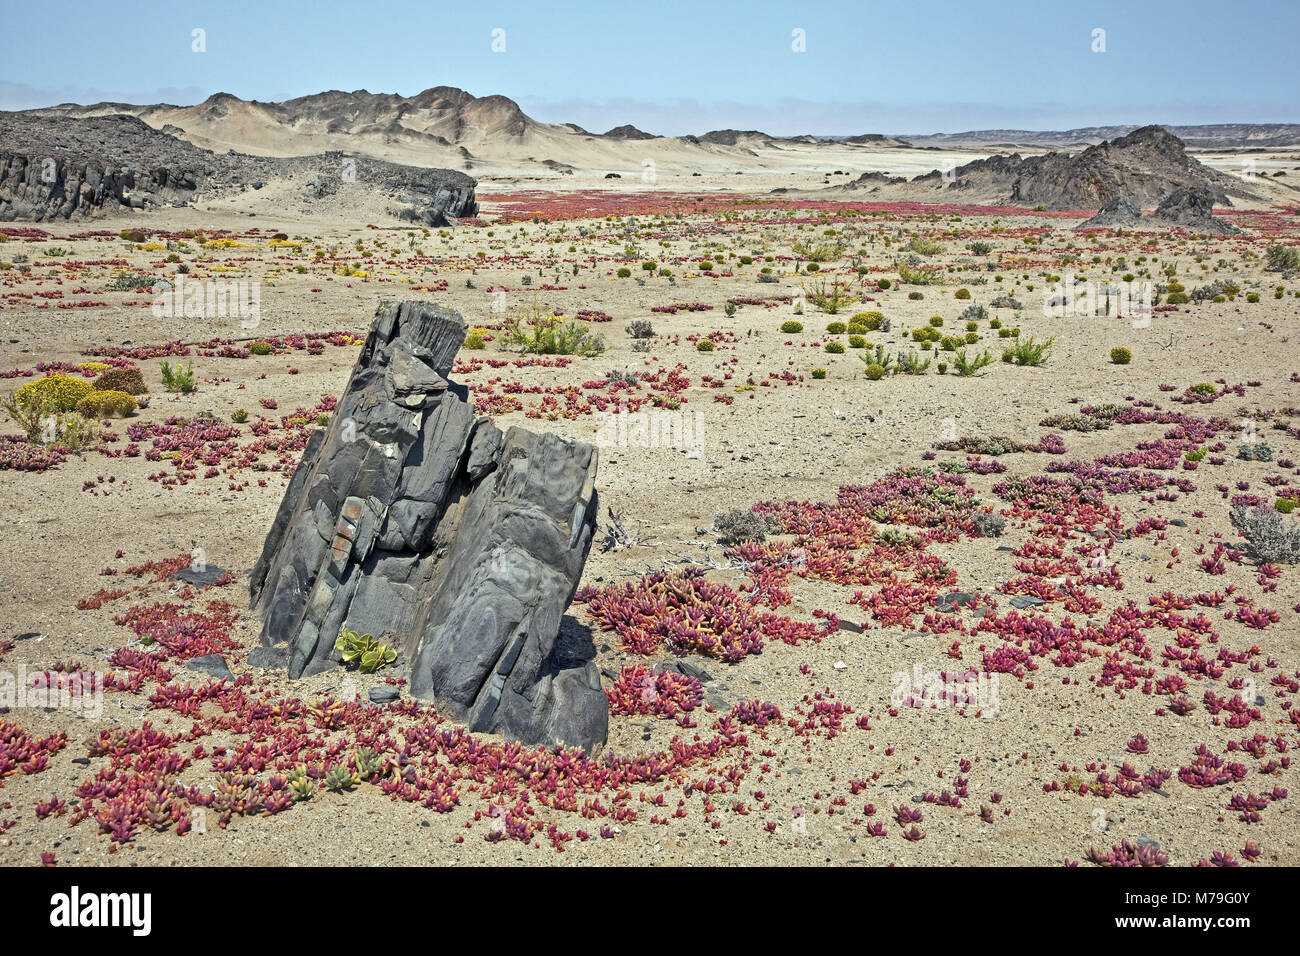 Africa, South-West Africa, Namibia, Erongo region, Dorob National Park, scenery, Namib, Namib desert, nature reserve, - Stock Image